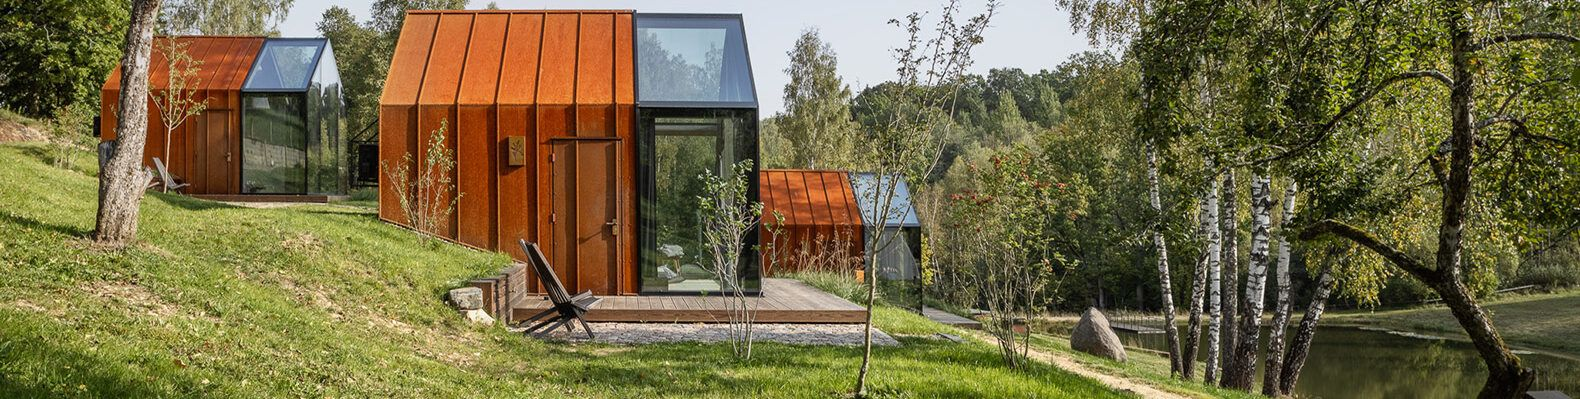 glass and weathered steel cabins on a hill